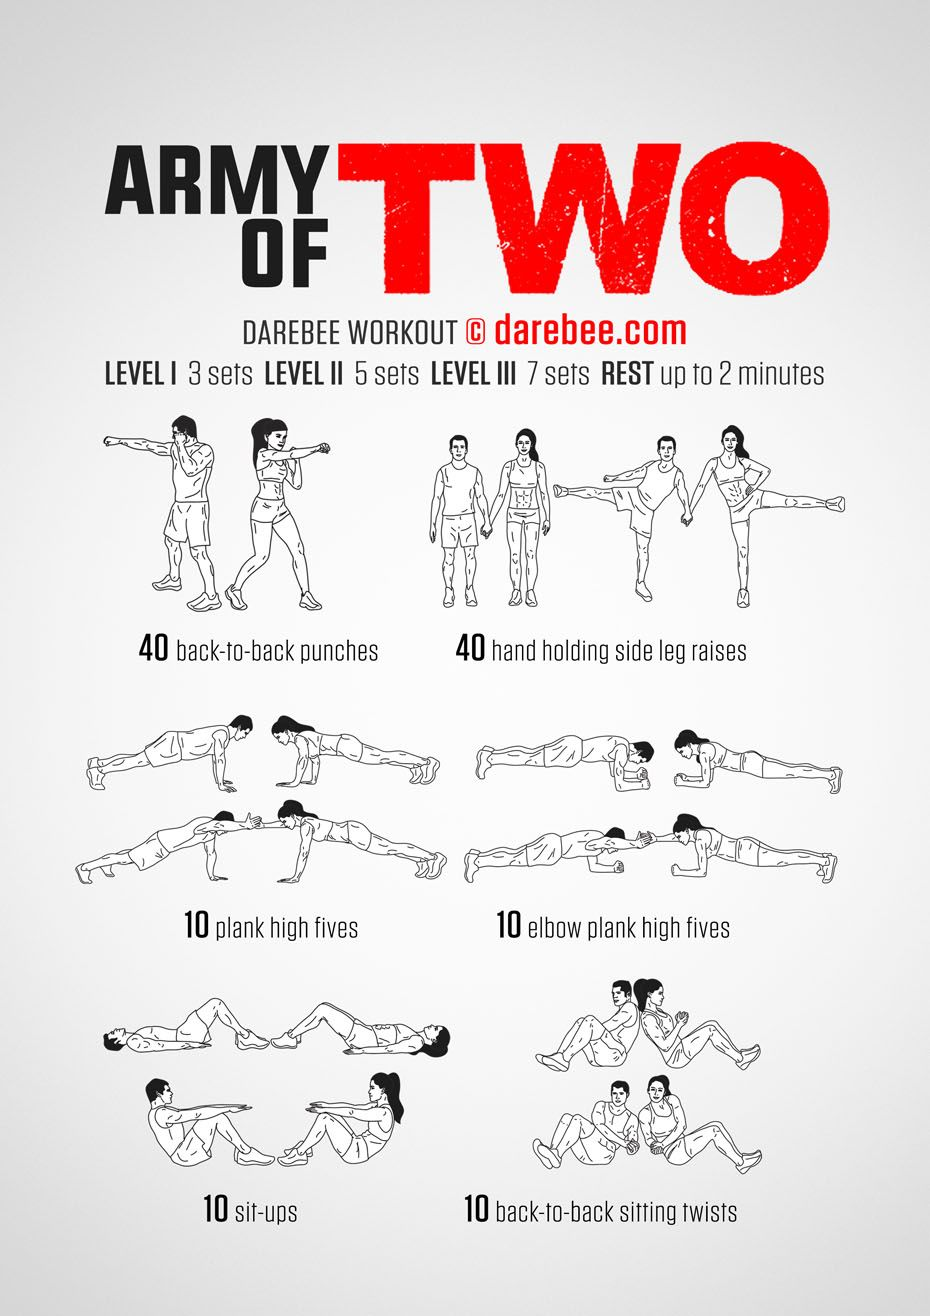 Army Of Two Workout  Us    Army Workout And Exercises